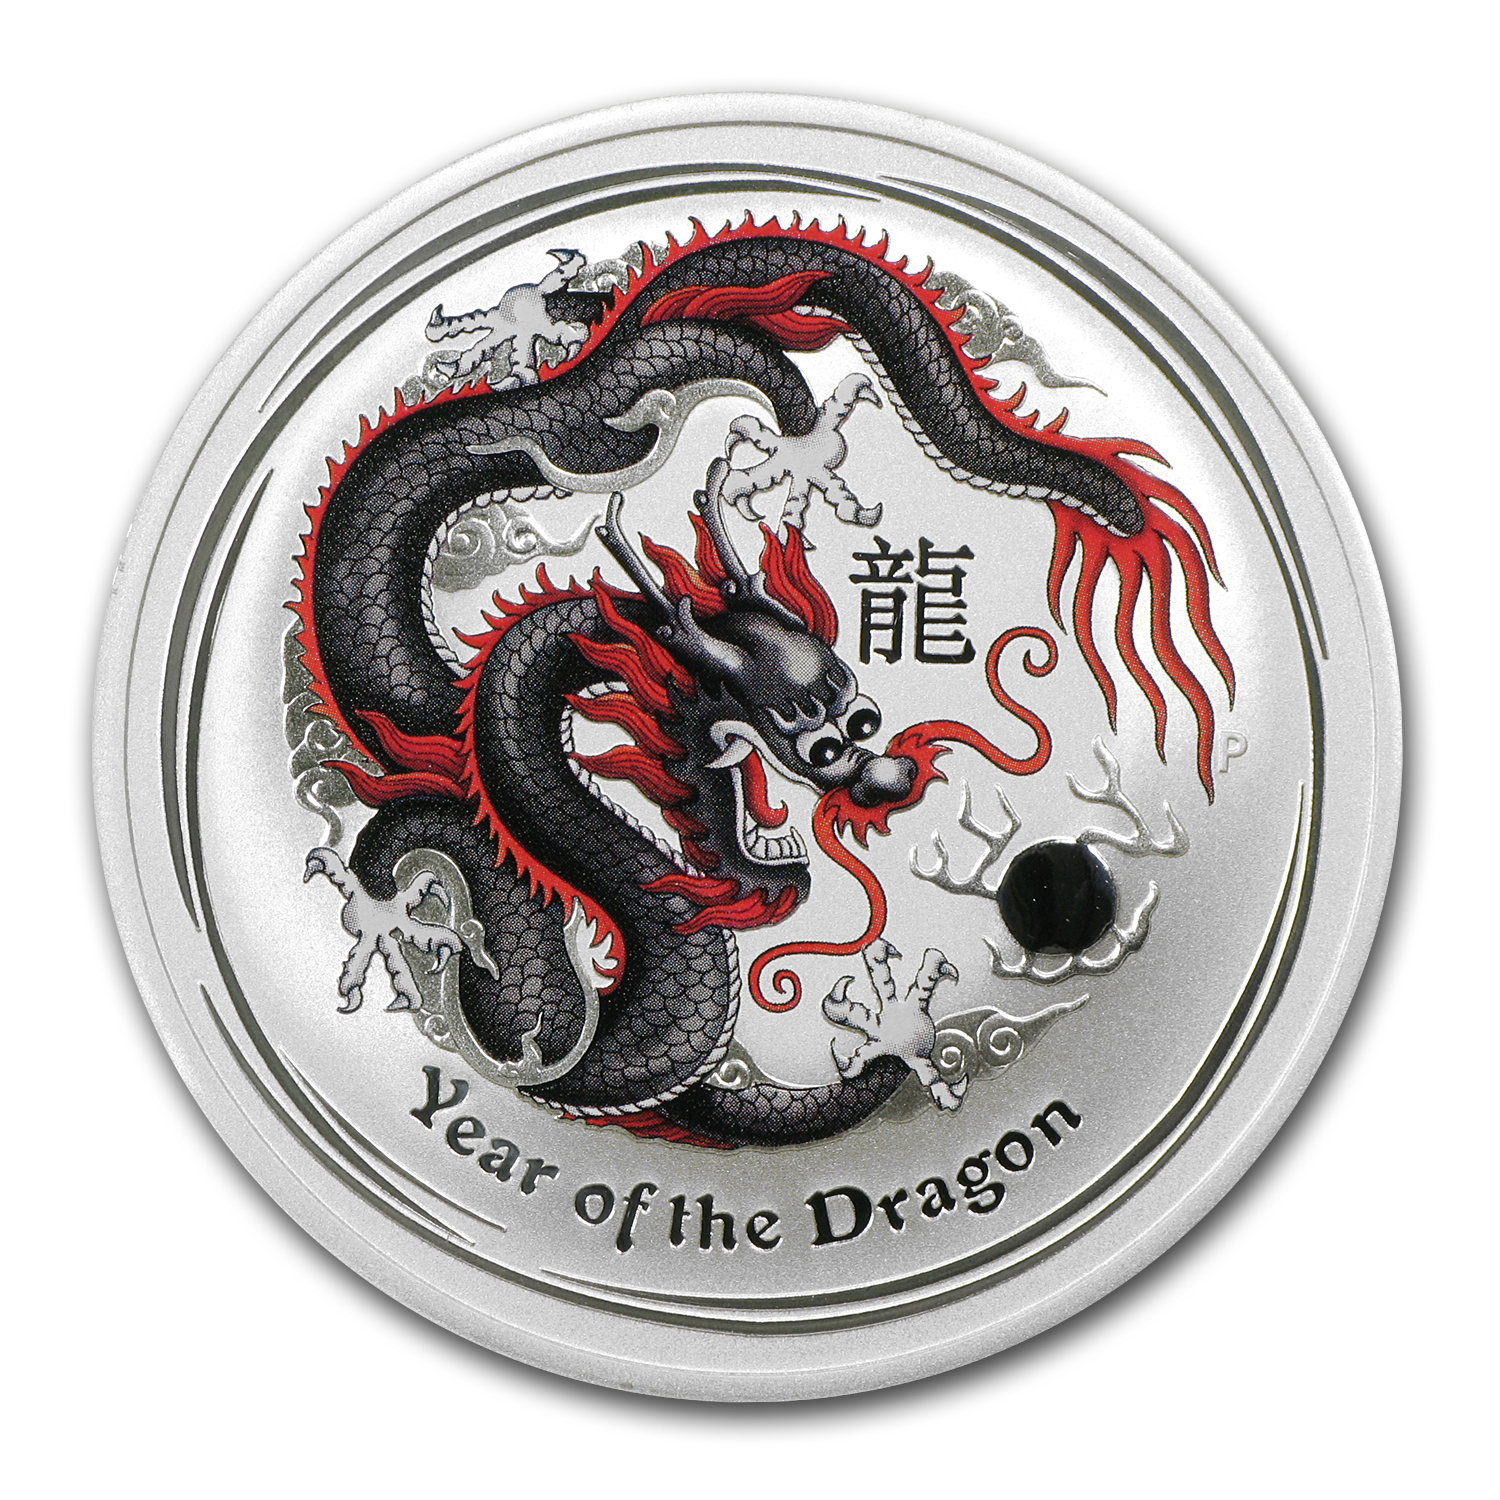 2012 Australia 1 oz Silver Black Dragon BU (Berlin)